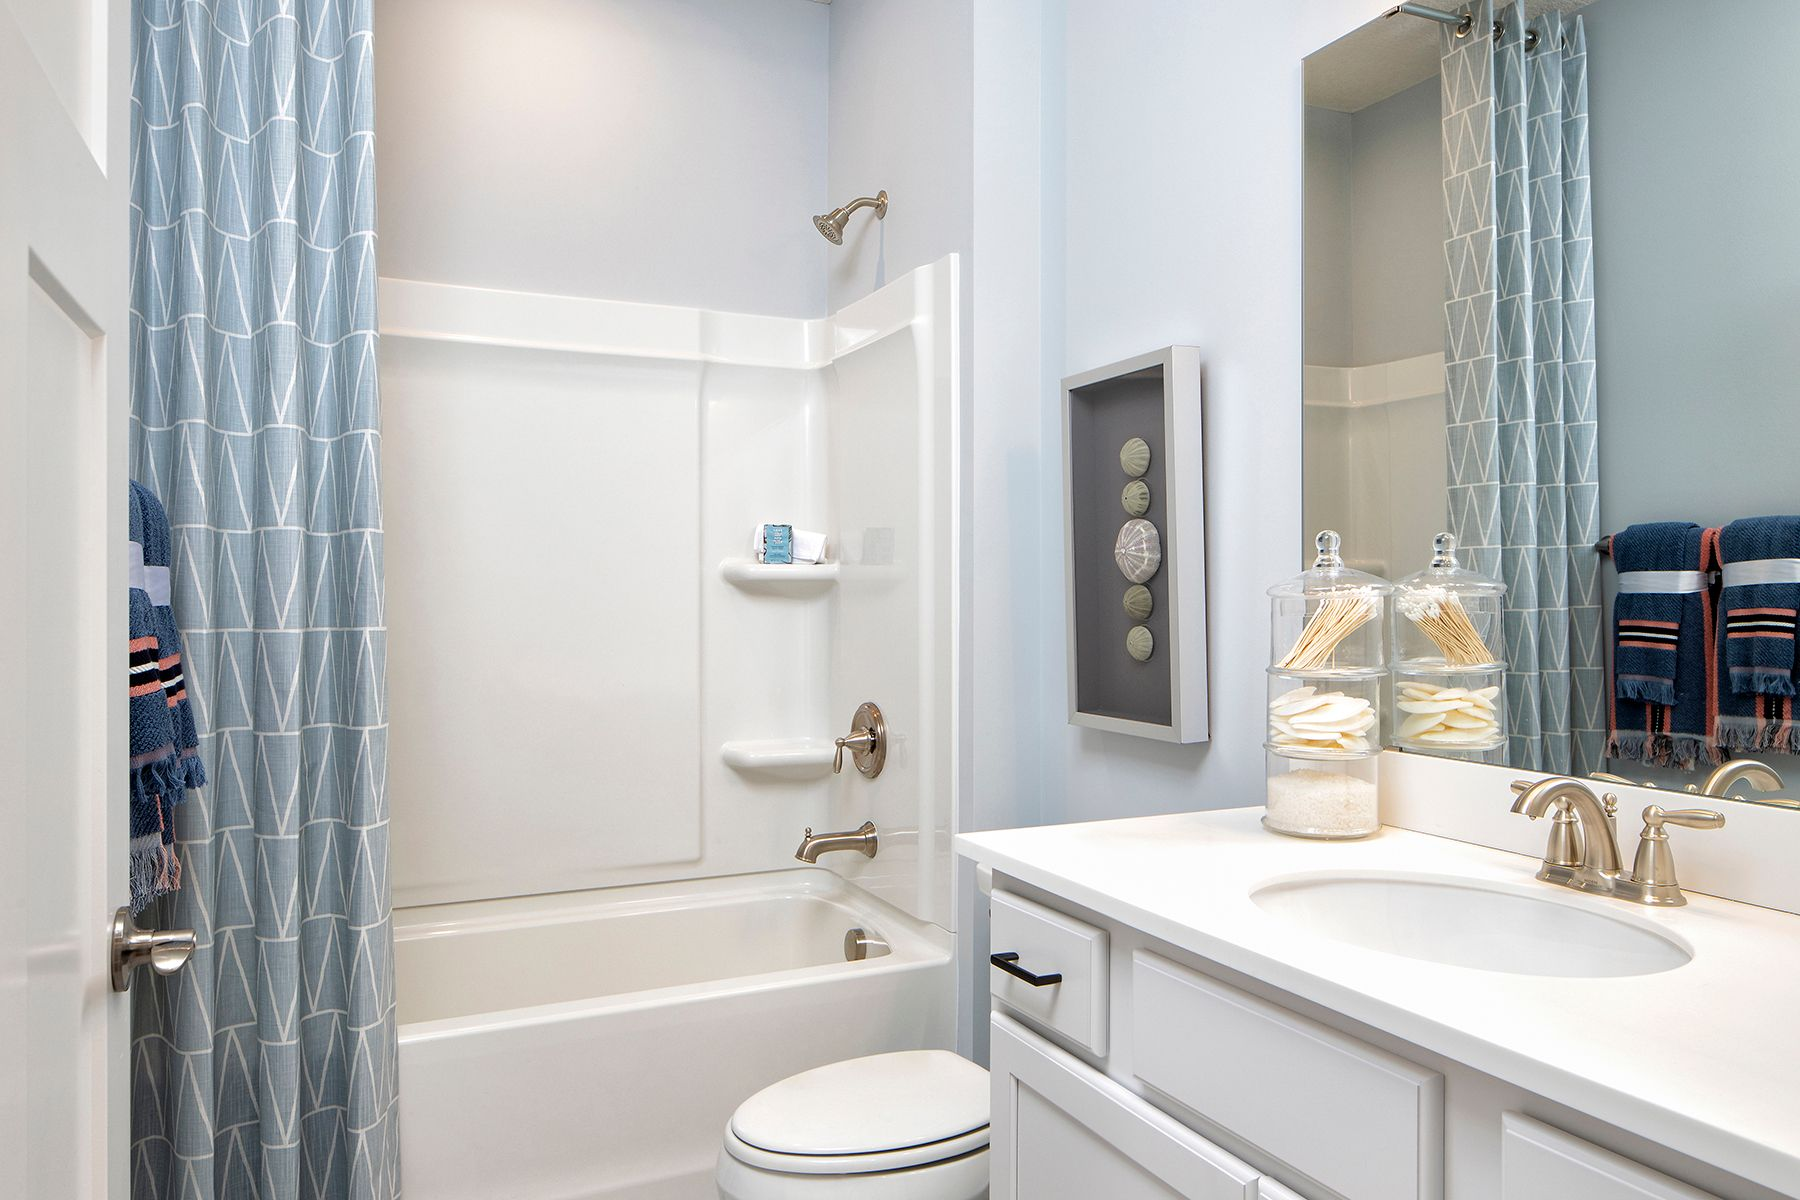 Bathroom featured in the Cedarwood By M/I Homes in Minneapolis-St. Paul, MN